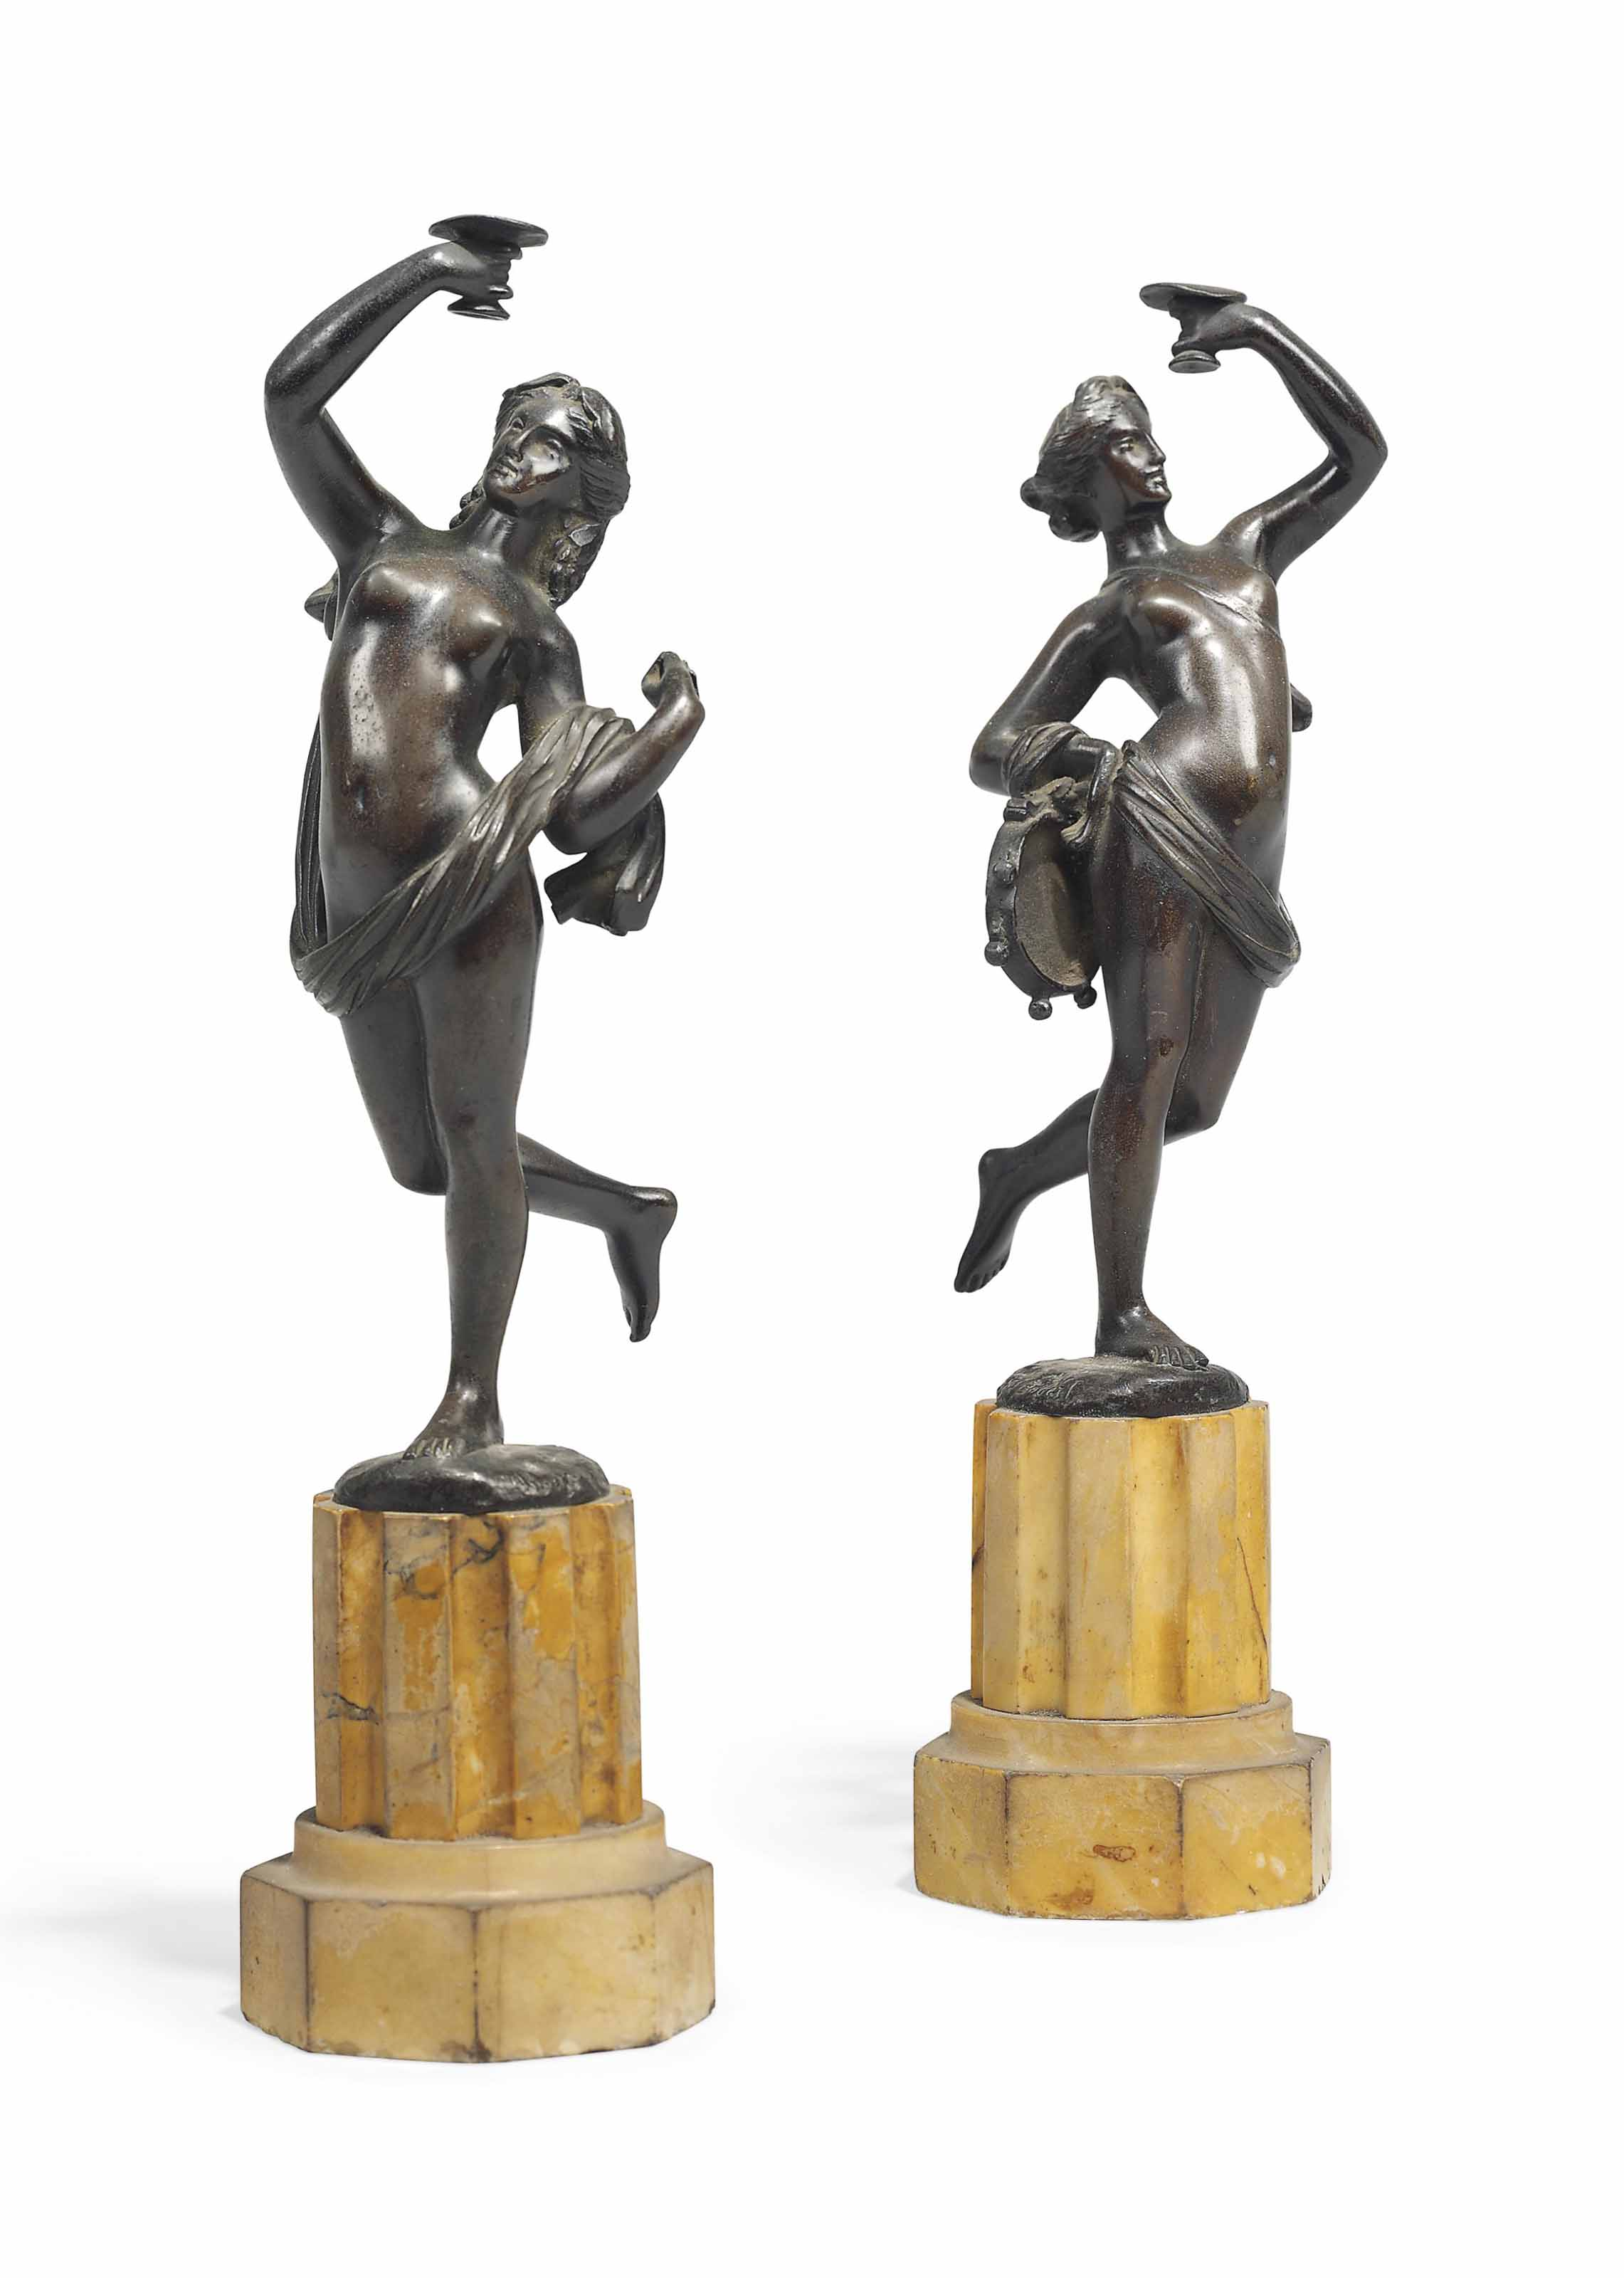 A PAIR OF BRONZE FIGURES OF DANCING NYMPHS